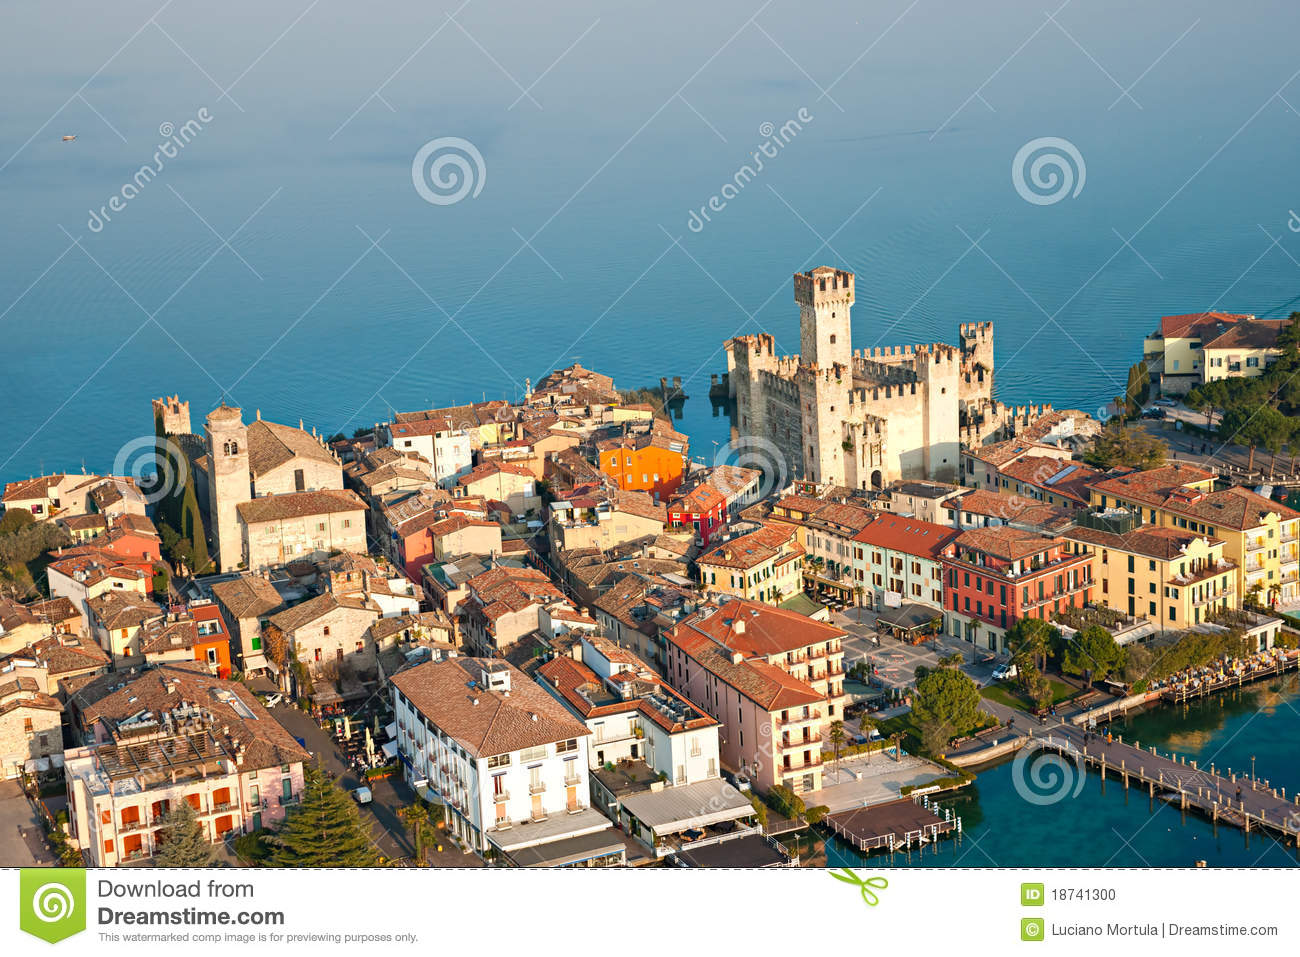 Scaliger Castle In Sirmione By Lake Garda, Italy Stock Photo - Image ...